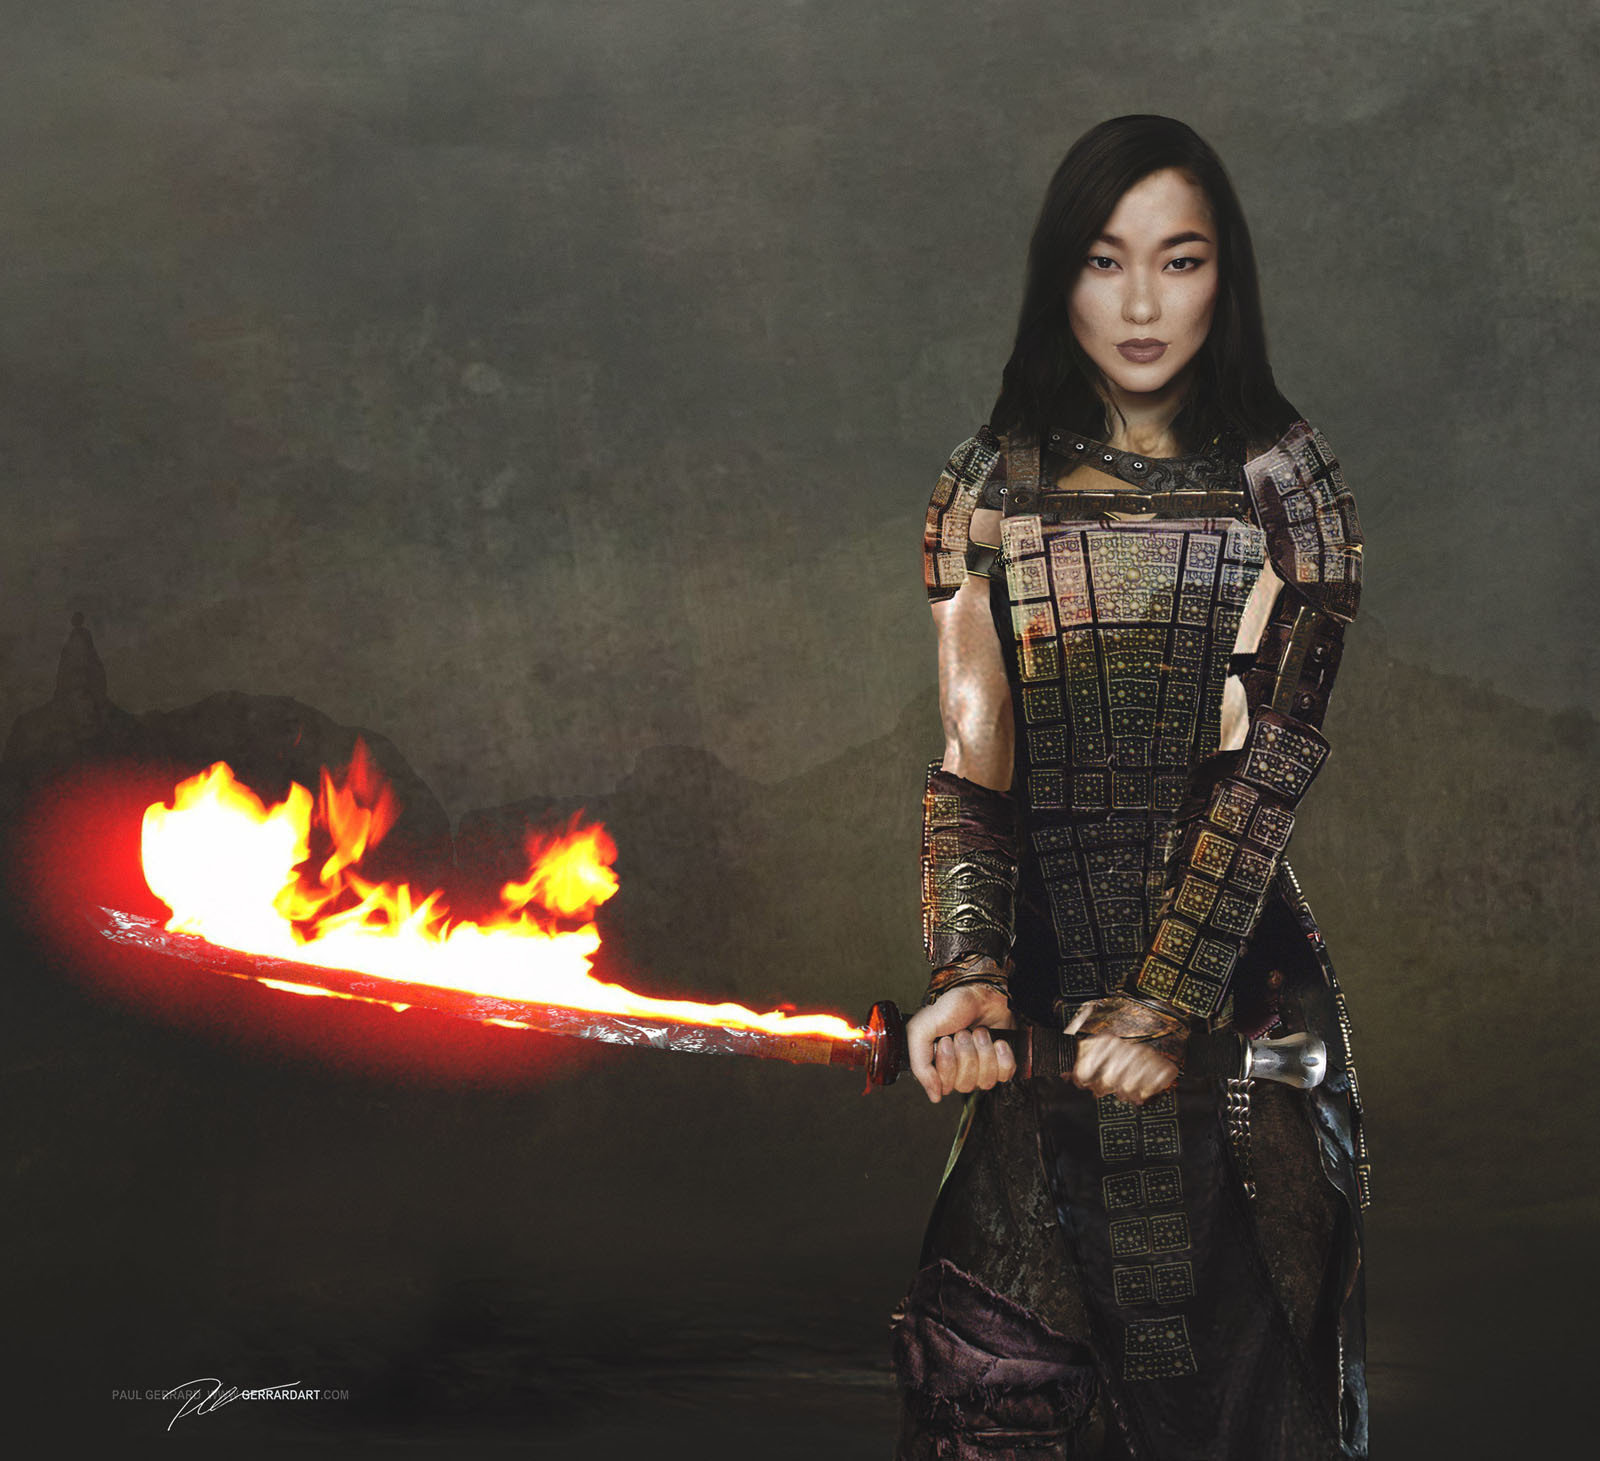 Paul gerrard mulan flame 04